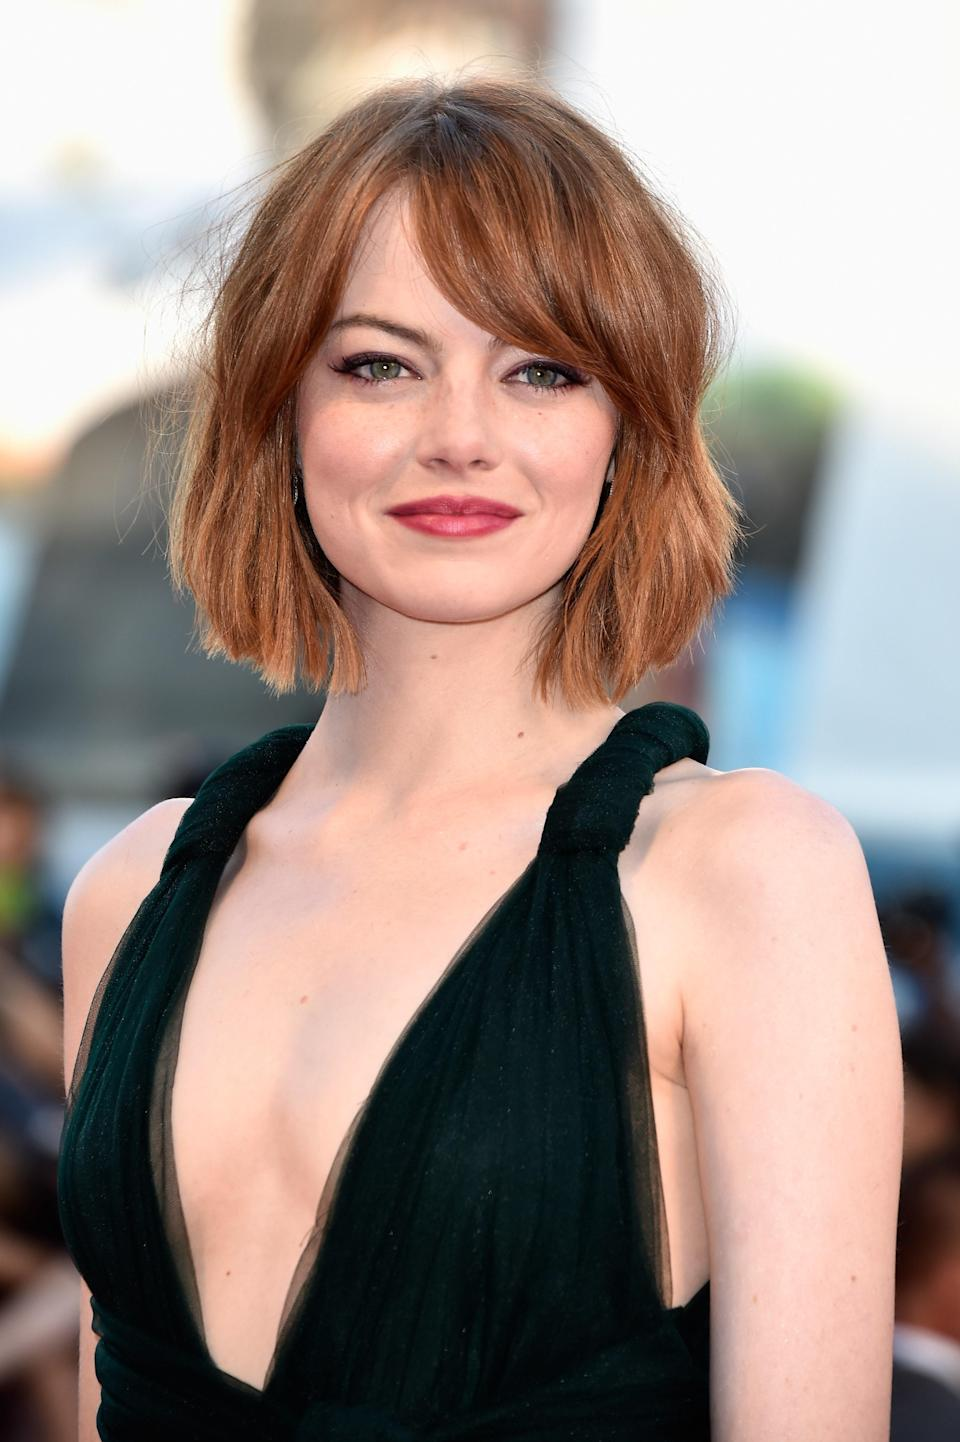 """When Emma Stone went to register for her SAG card, she was unable to use her real name, Emily Stone, because another actor had already filed under it. She chose Riley instead, before realizing it was a little <em>too</em> different from her birth name. """"I landed a guest spot on <em>Malcolm in the Middle</em>, and one day they were calling, 'Riley! Riley! Riley! We need you on set, Riley!' and I had no idea who they were talking to,"""" Stone <a href=""""https://www.wmagazine.com/gallery/emma-stone-natalie-portman-michelle-williams-and-more-are-the-best-performances-of-the-year/?mbid=synd_yahoo_rss"""" rel=""""nofollow noopener"""" target=""""_blank"""" data-ylk=""""slk:told W Magazine"""" class=""""link rapid-noclick-resp"""">told <em>W Magazine</em></a>. She started using Emma but says she """"would love"""" to get back to using Emily some day."""